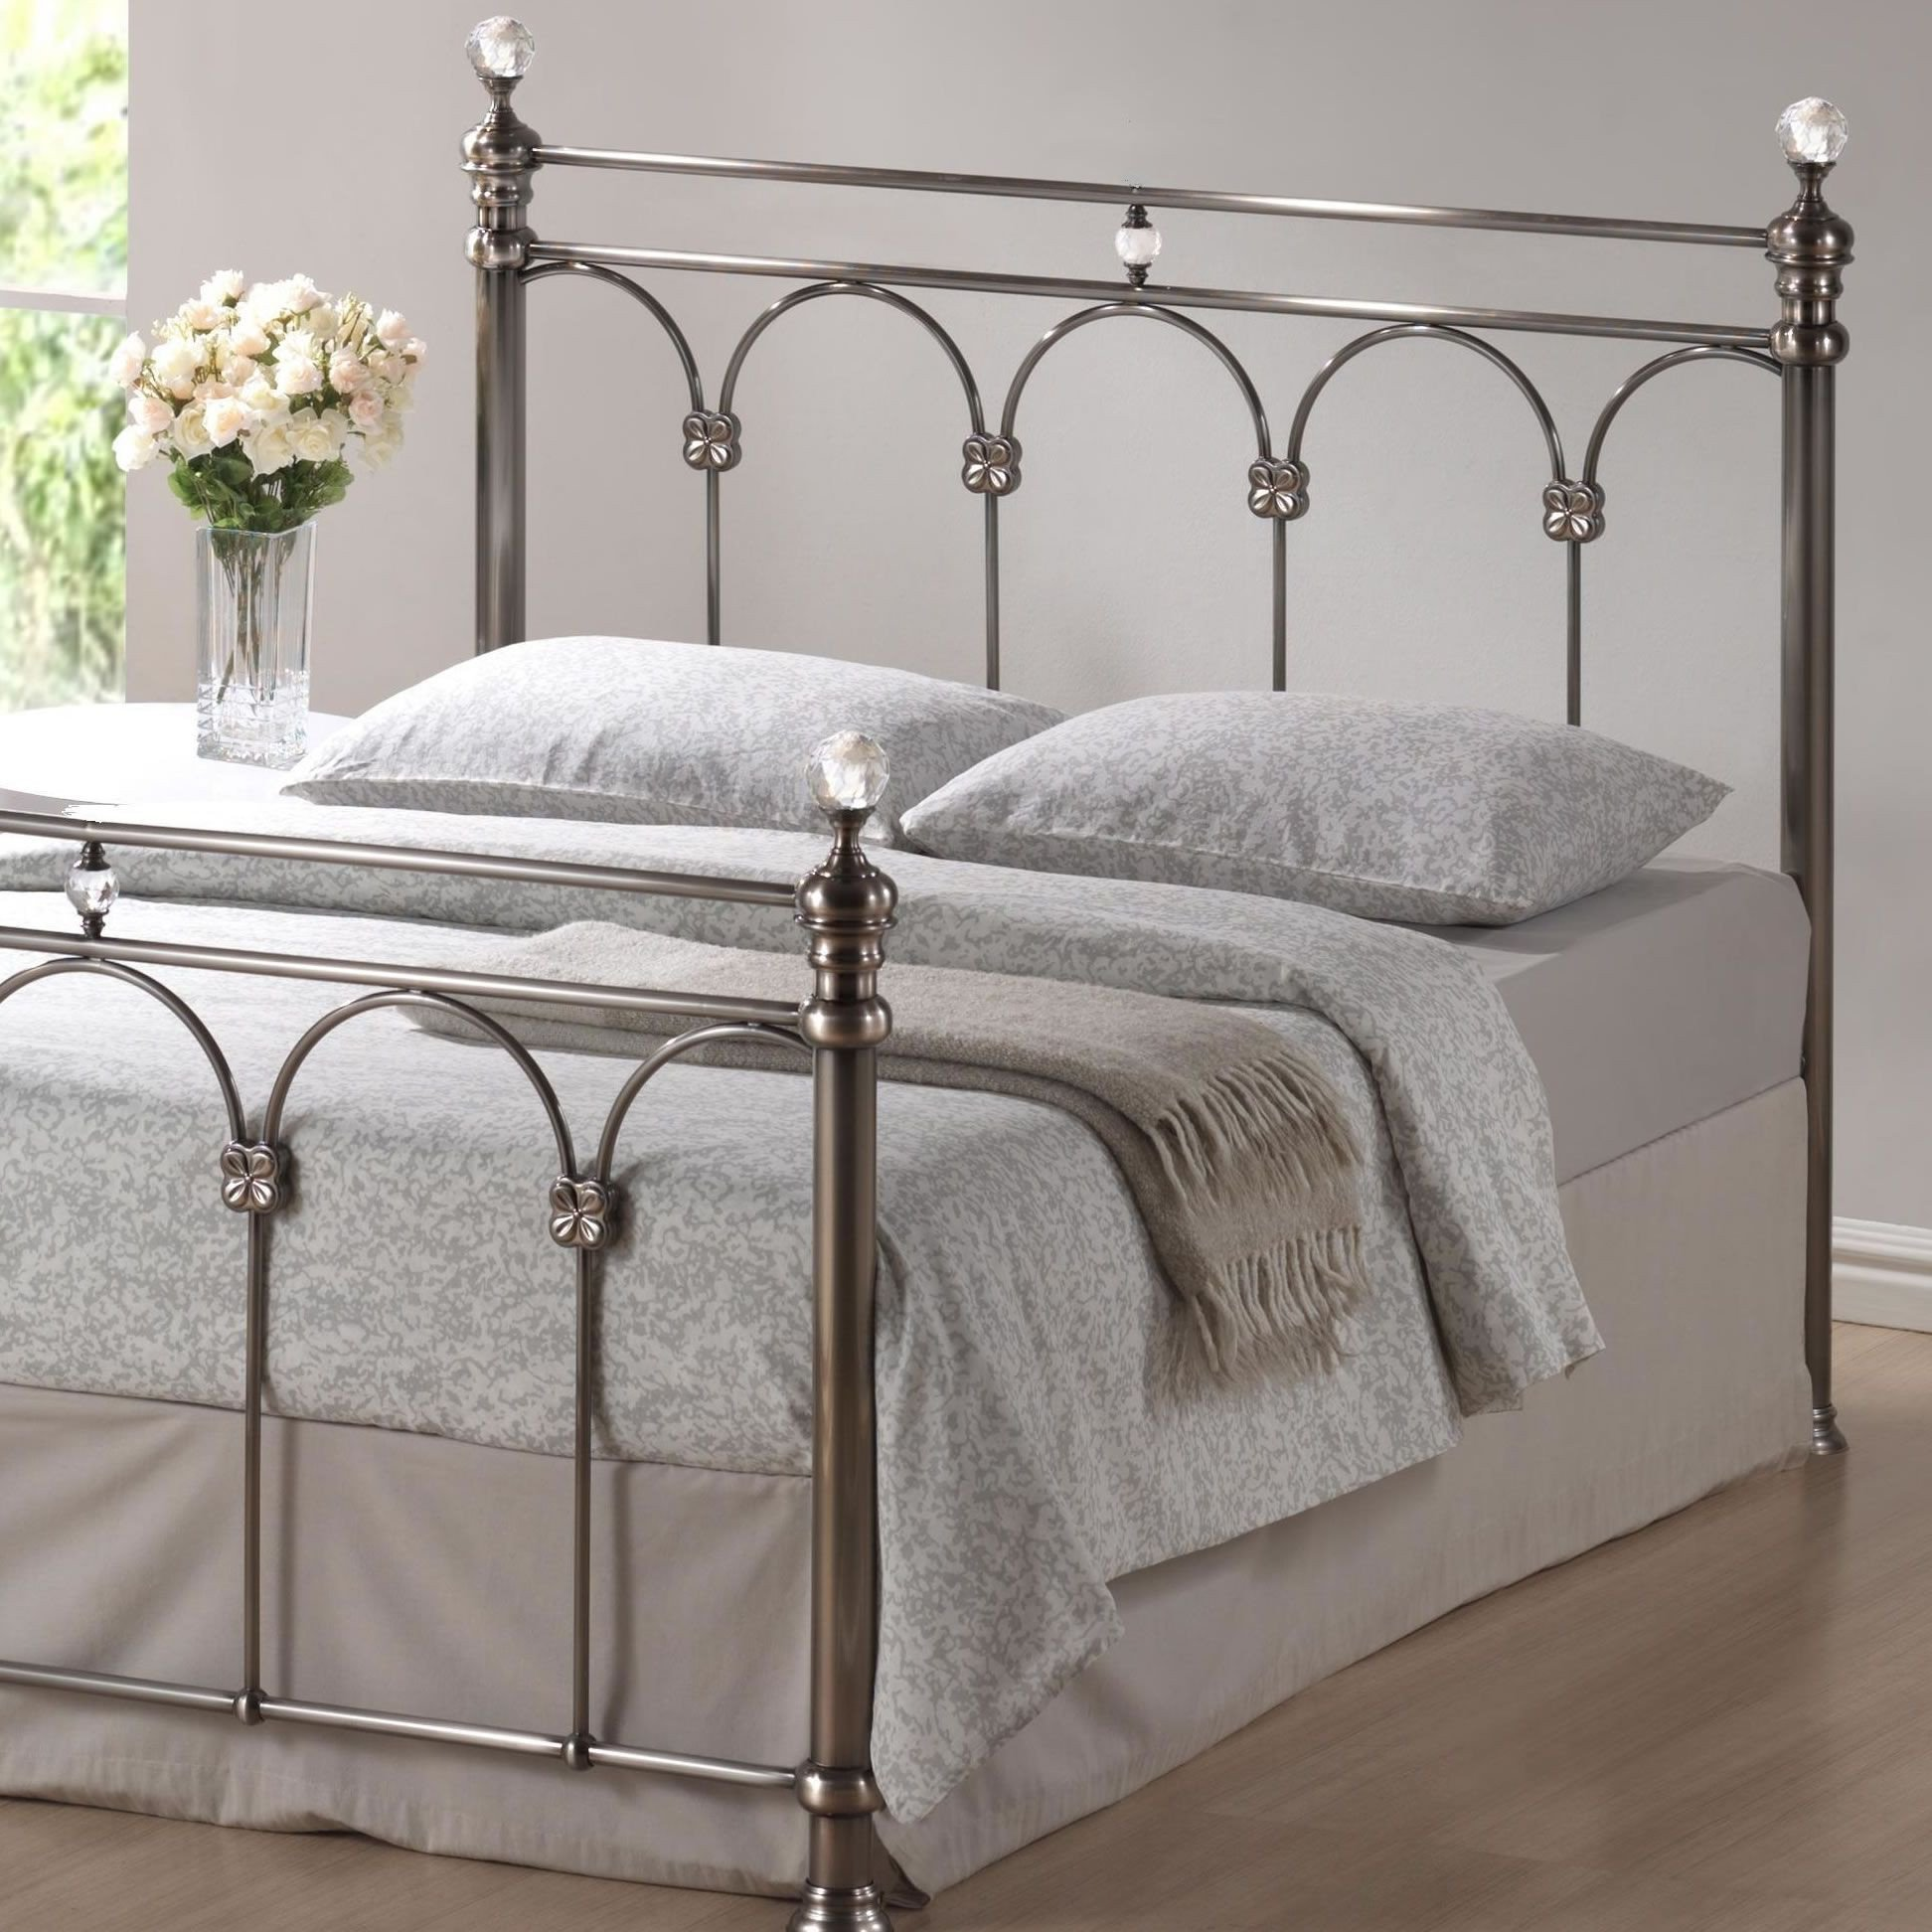 Wrought Iron Bedroom Set Fresh Pin by Nicole torres On Guest Room